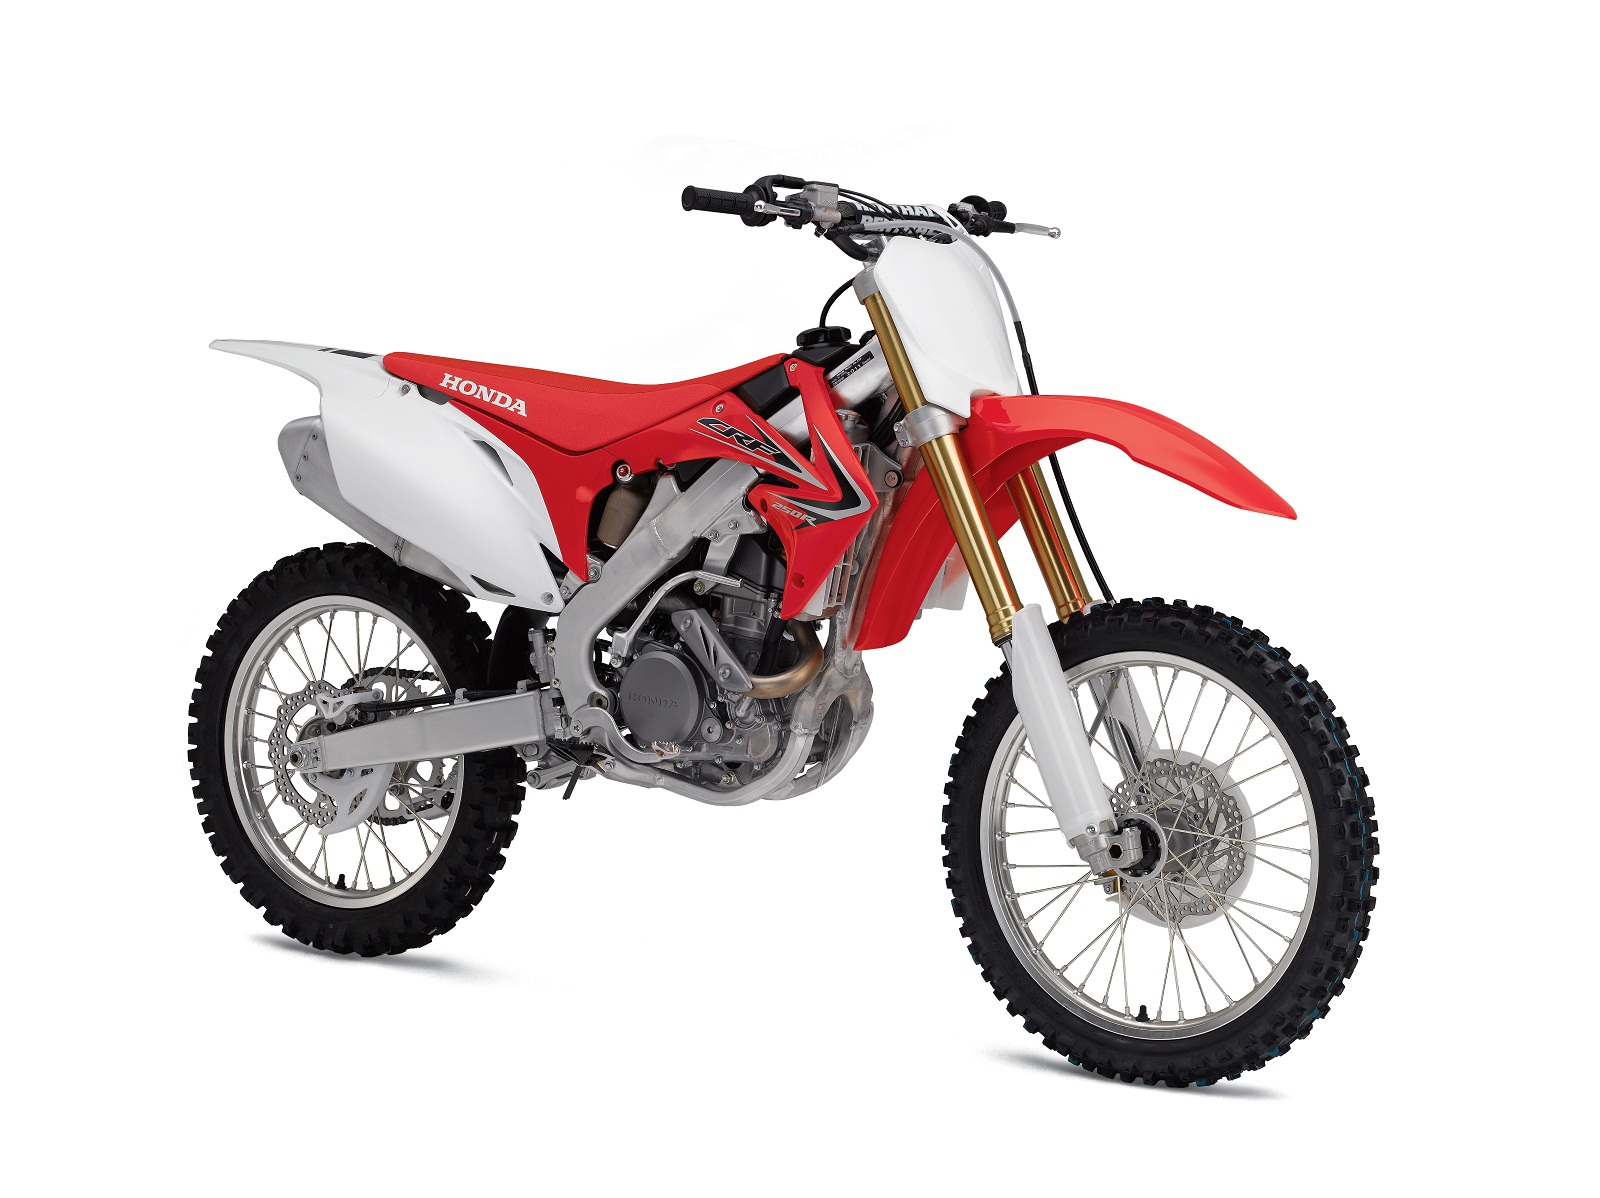 2012 honda crf250r review gallery top speed. Black Bedroom Furniture Sets. Home Design Ideas